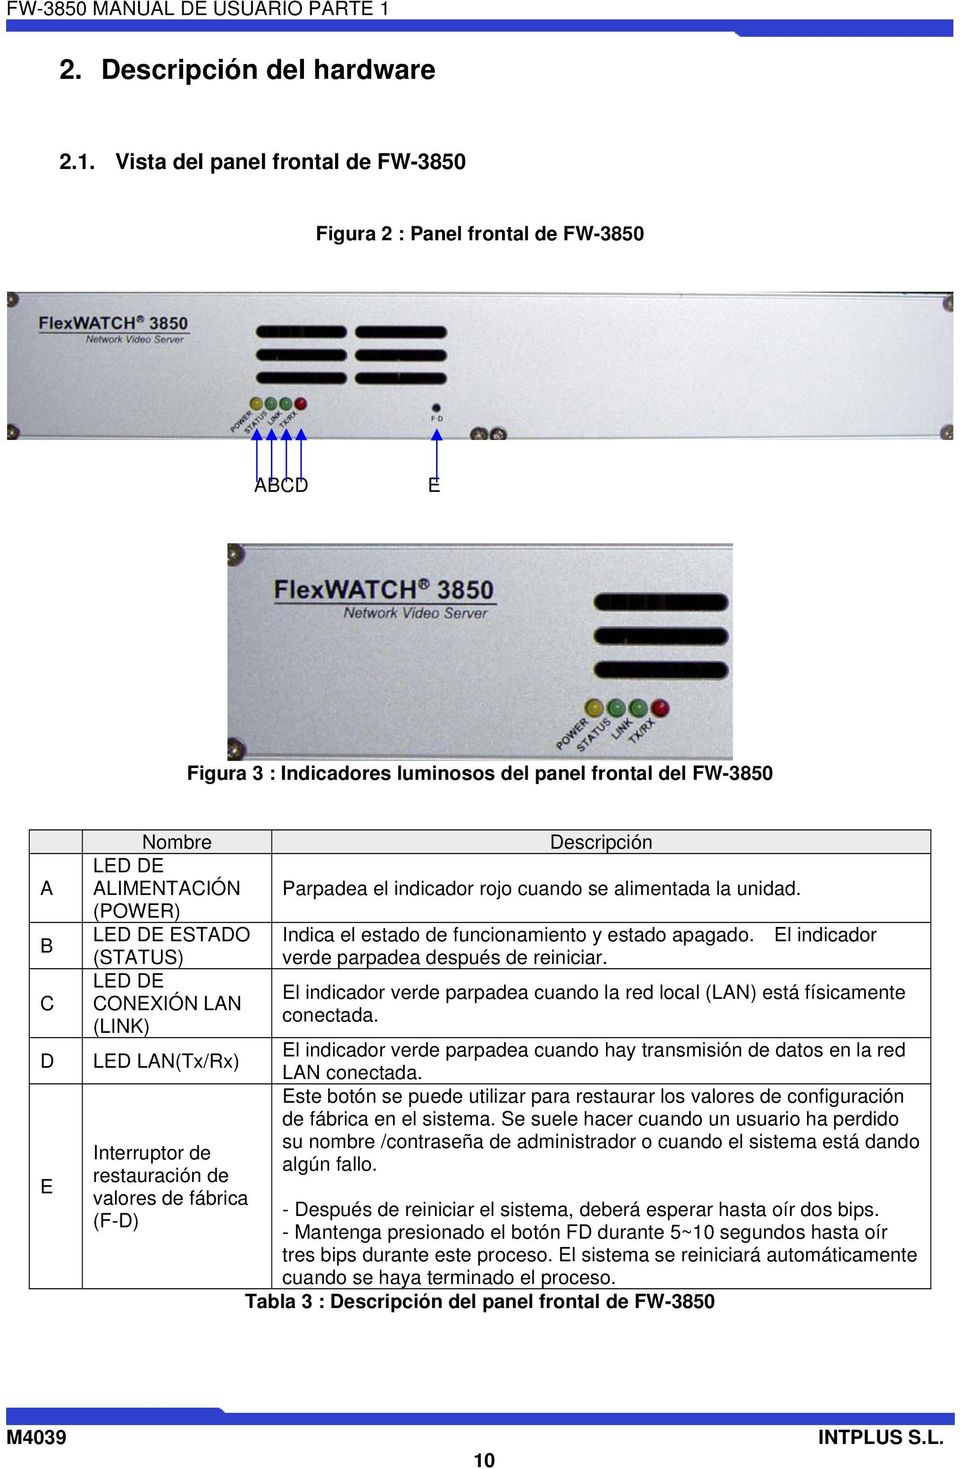 Vista del panel frontal de FW-3850 Figura 2 : Panel frontal de FW-3850 ABCD E Figura 3 : Indicadores luminosos del panel frontal del FW-3850 A B C D E Nombre LED DE ALIMENTACIÓN (POWER) LED DE ESTADO